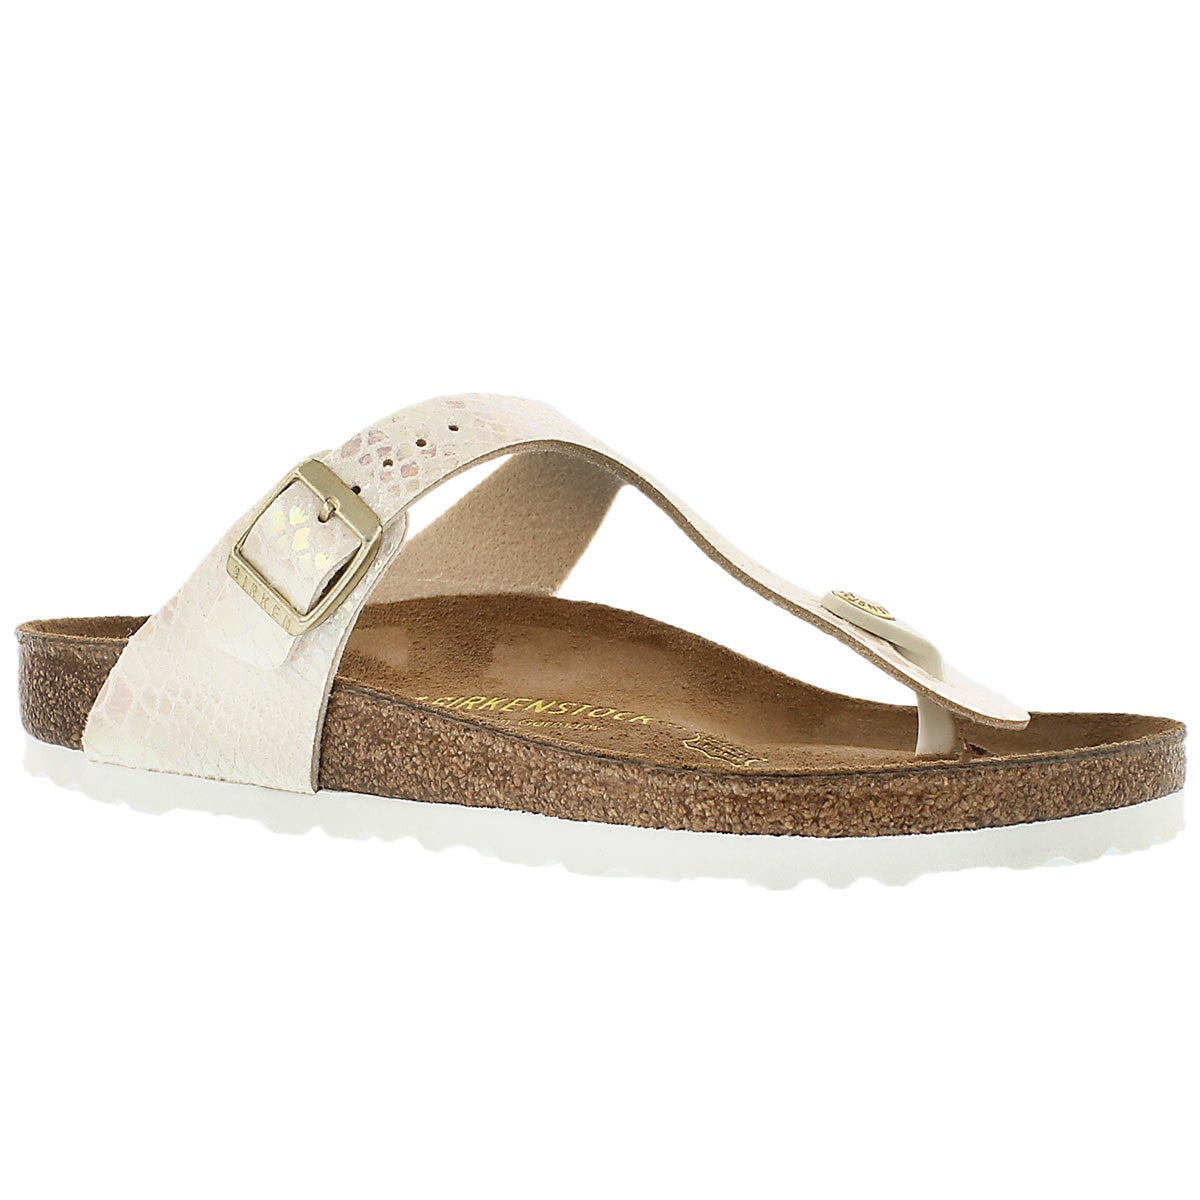 Women's GIZEH shiney snake cream thong sandals